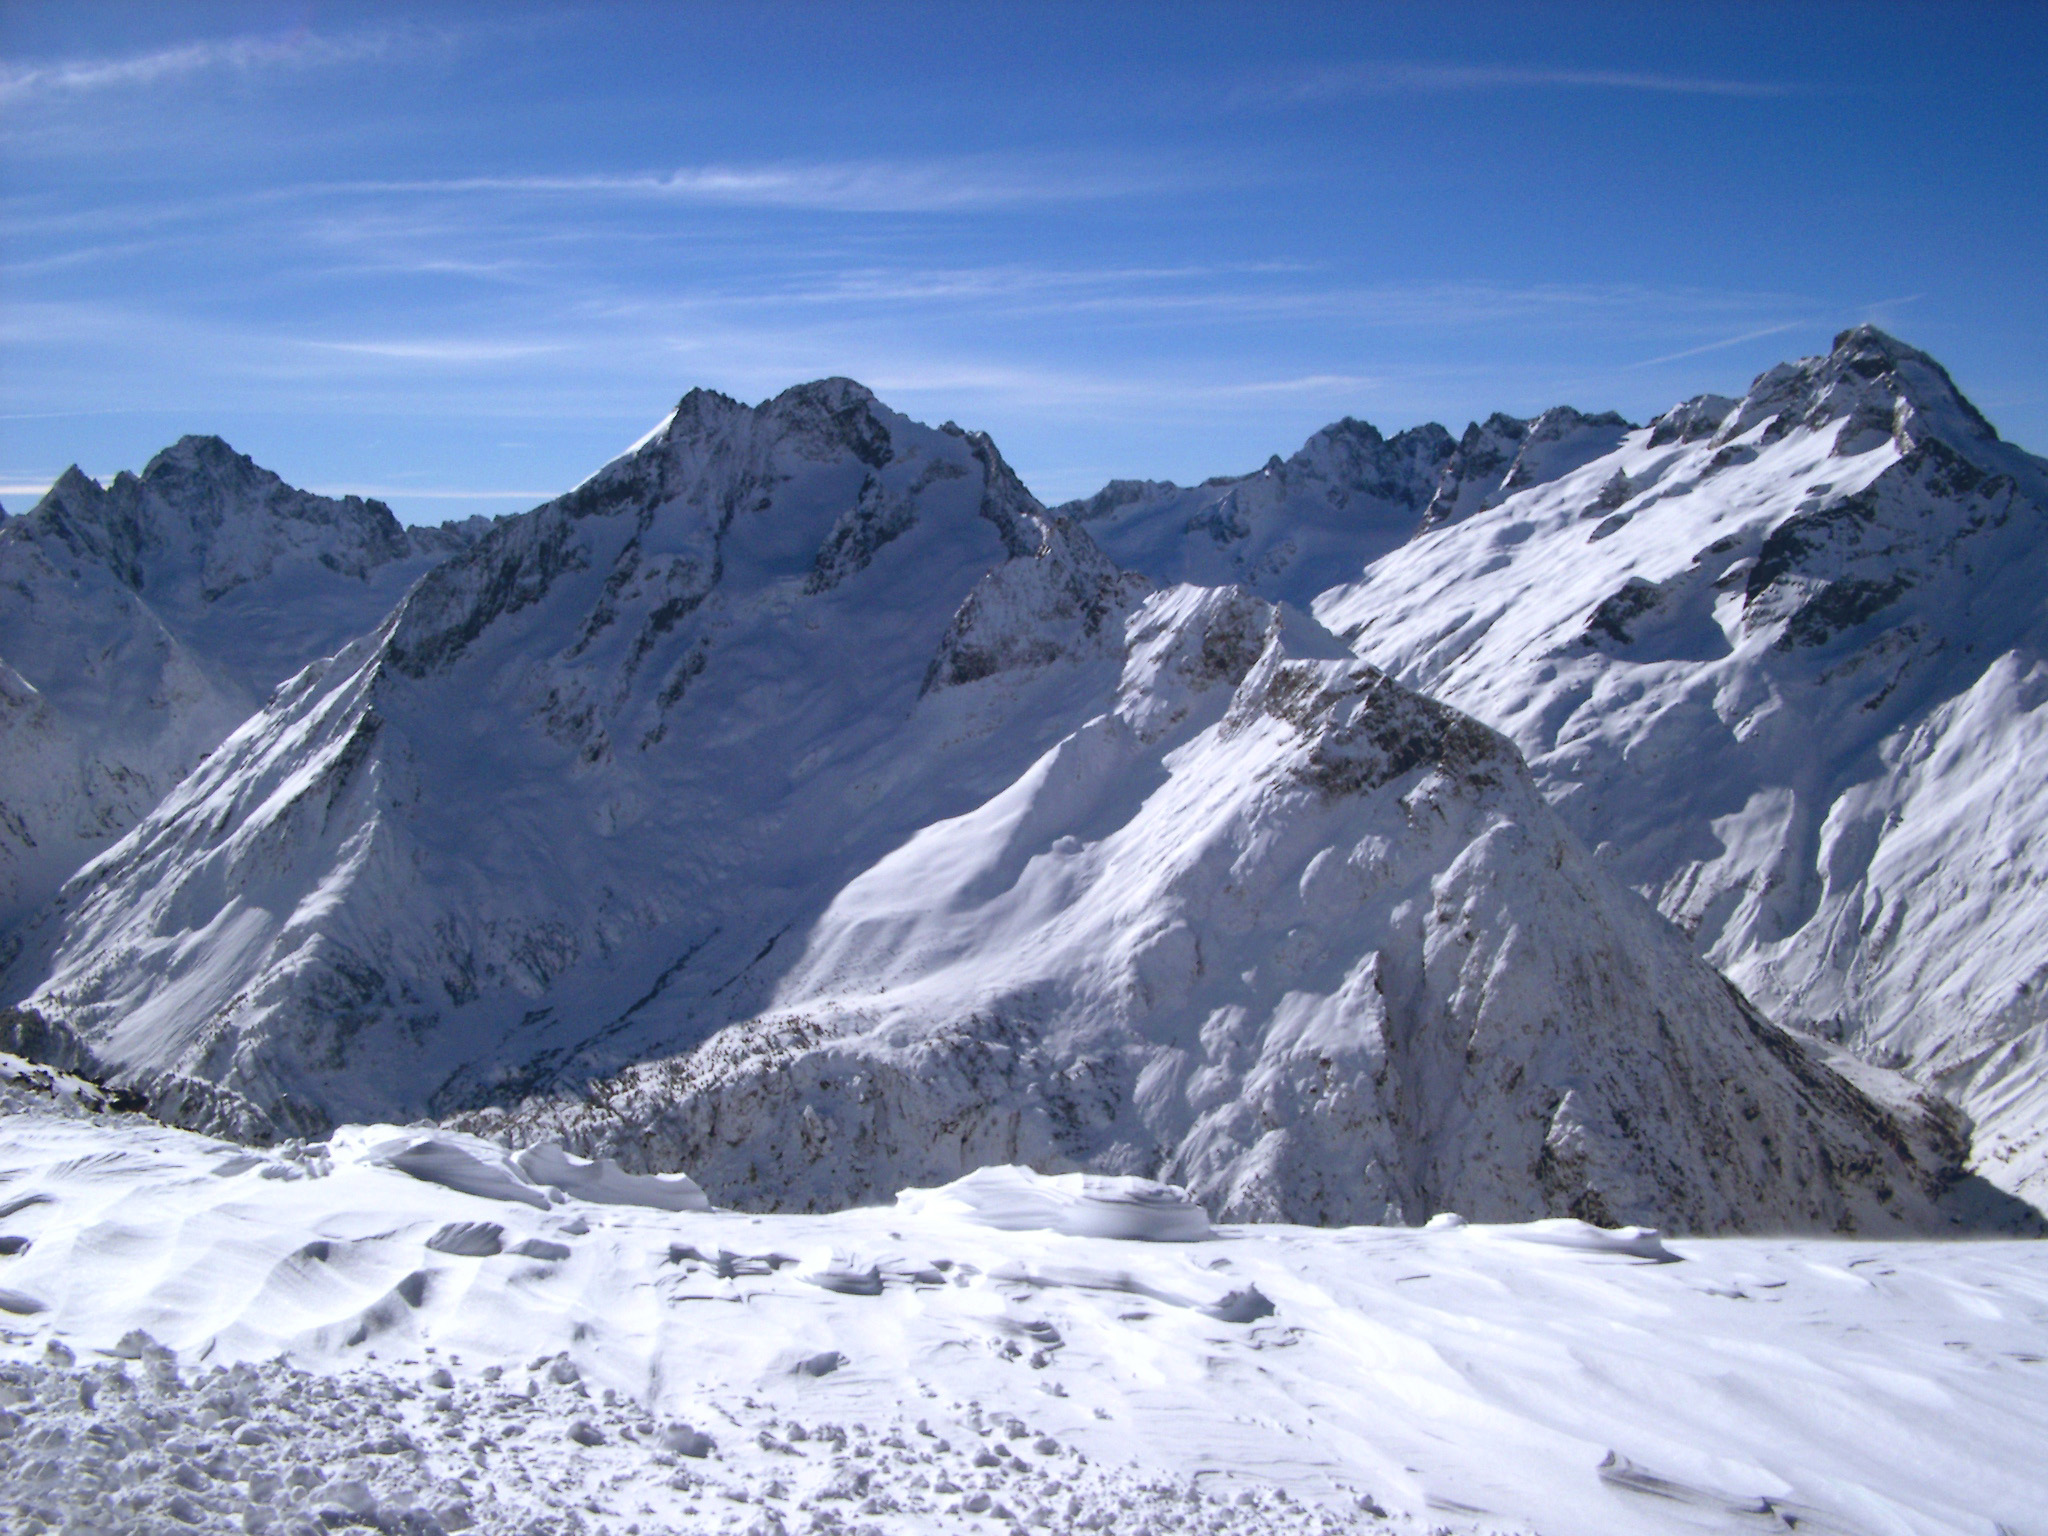 Attractive View of Snow Filled Mountains on Winter Holiday Season with Light Blue Sky Background.